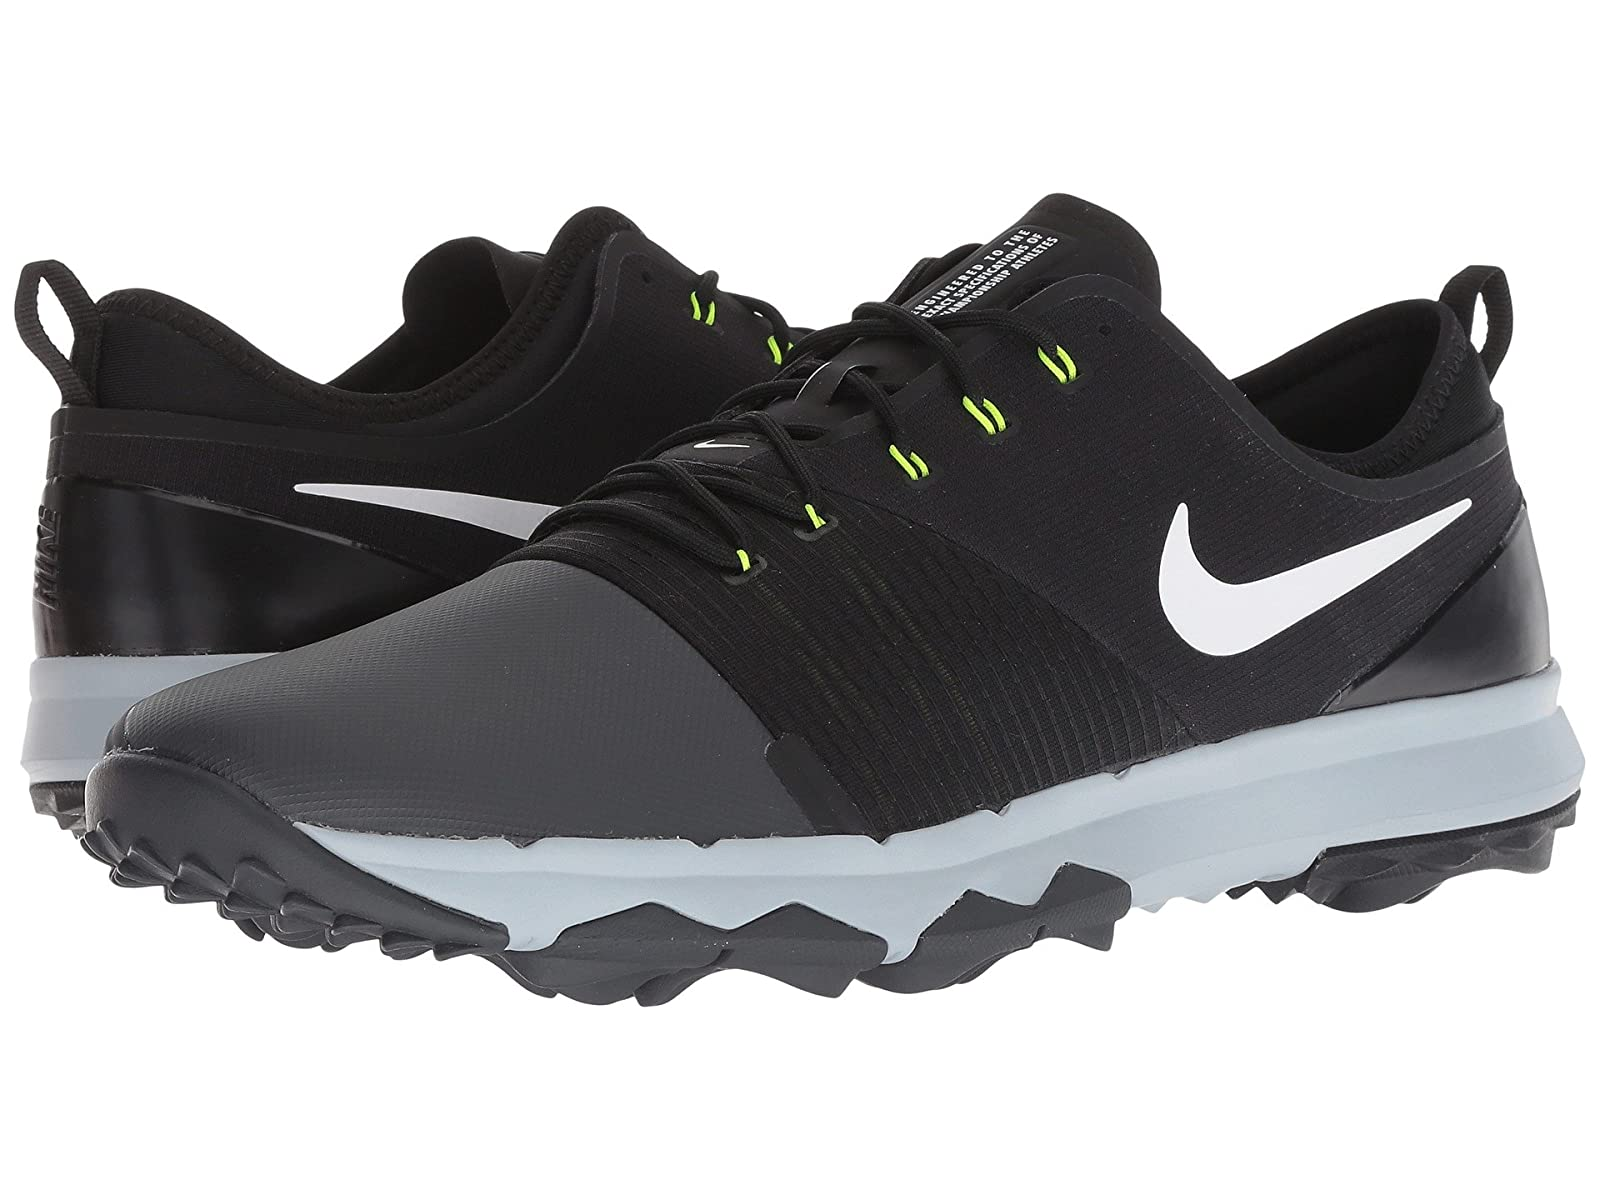 Nike Golf FI Impact 3Atmospheric grades have affordable shoes